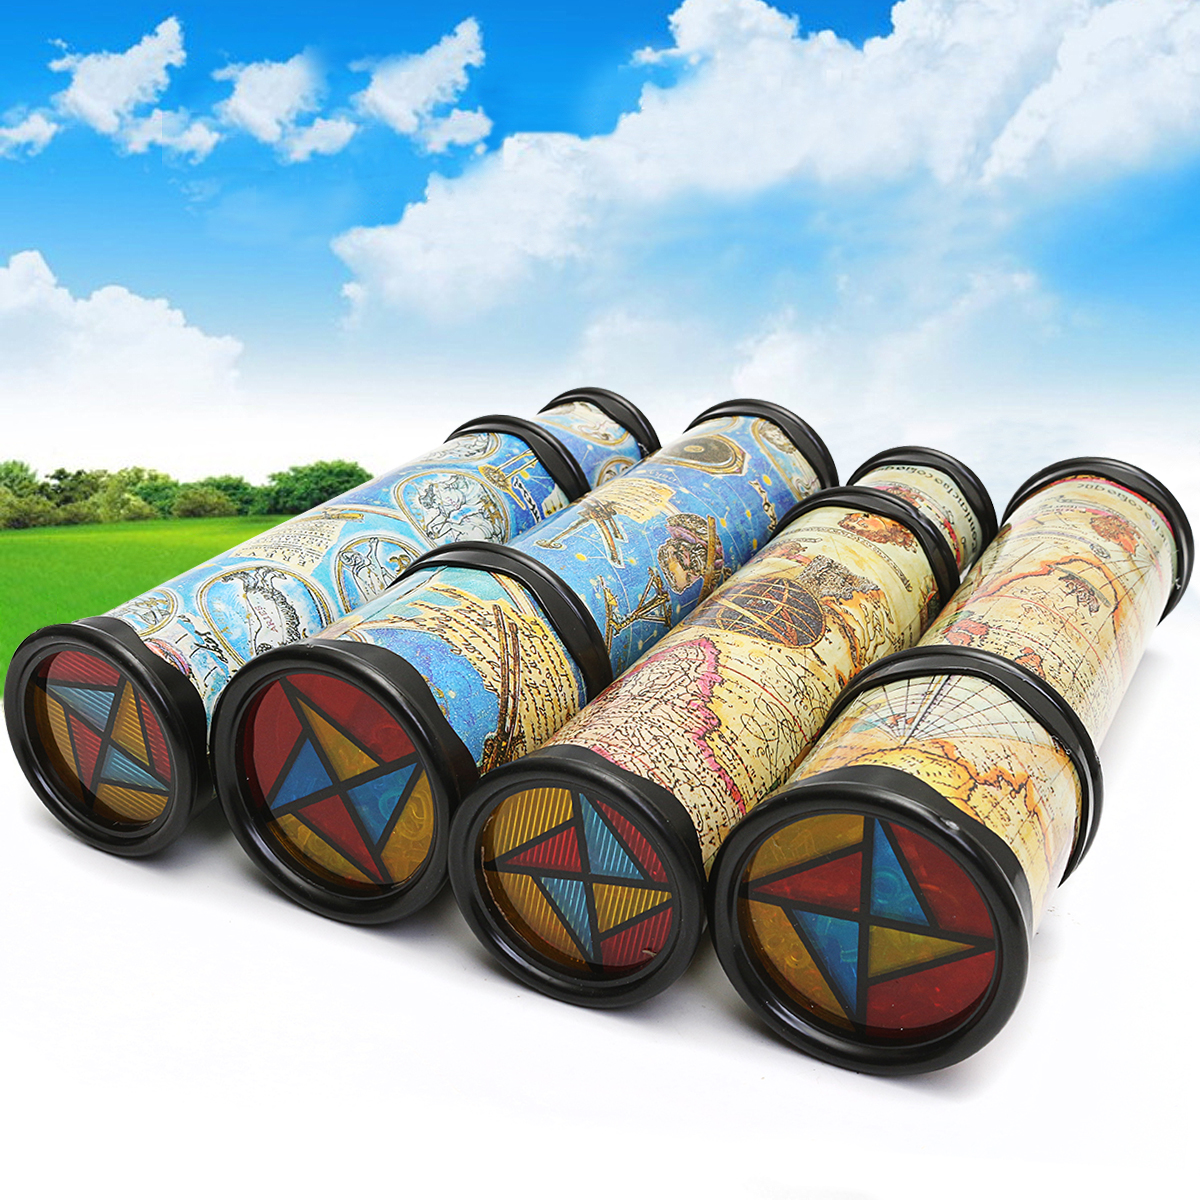 20/30cm Blue Yellow Magical Rotate Kaleidoscope Toy Extended Rotation Fancy Colored World Kids Toy